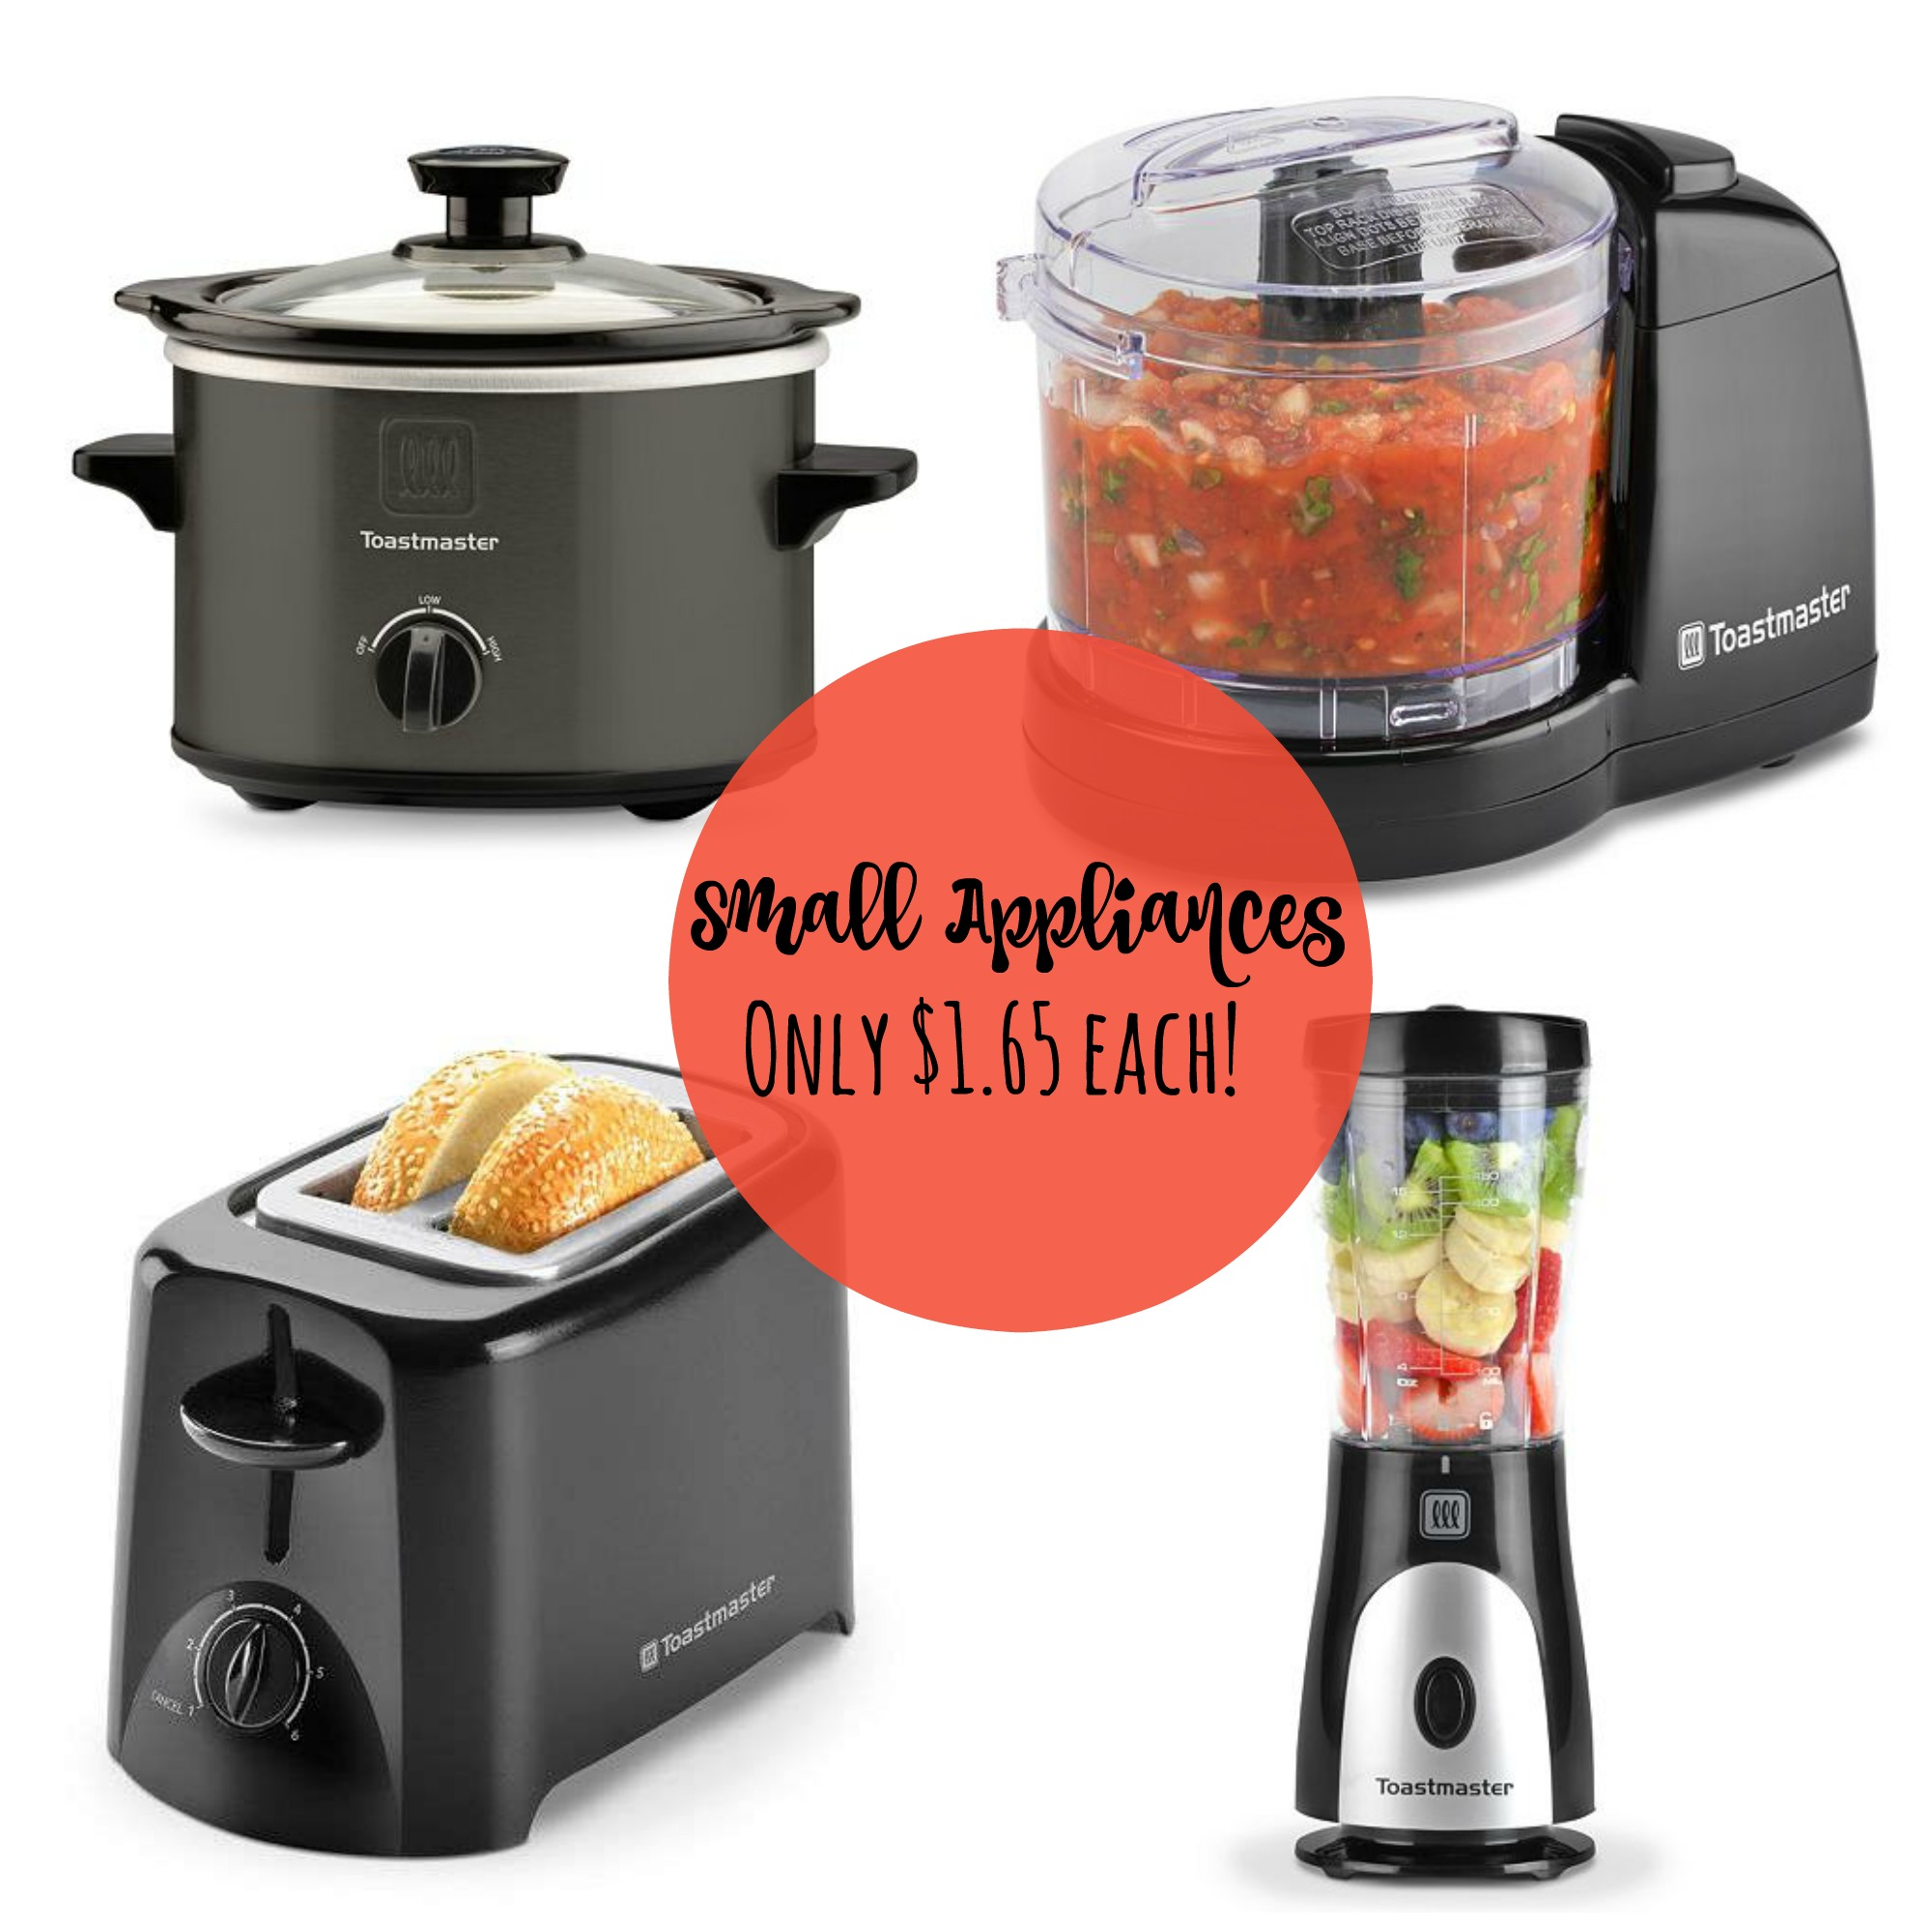 SUPER HOT** Toastmaster Appliances $1.65 {After Kohl's Cash and ...